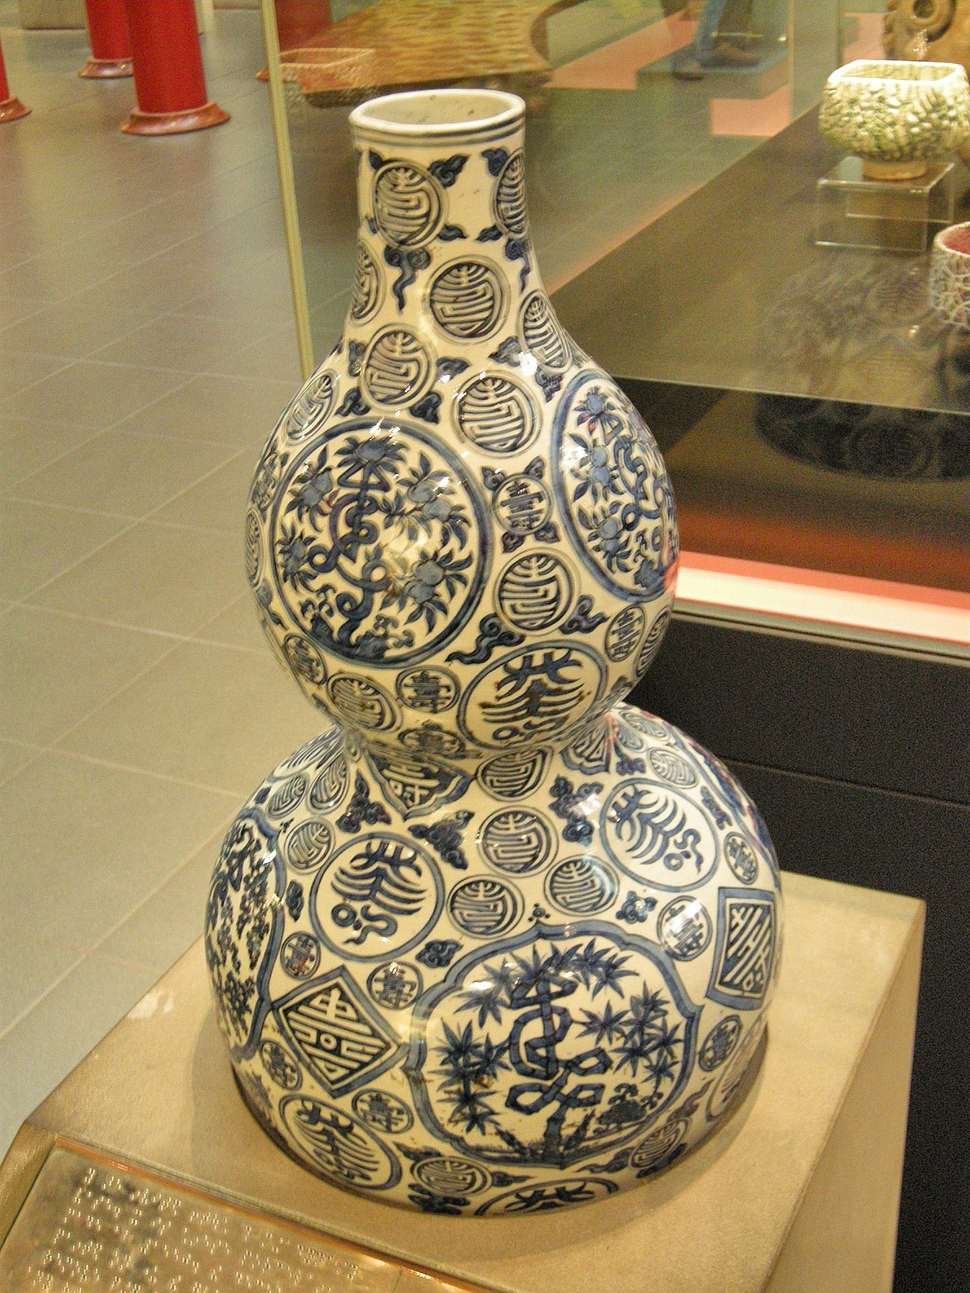 wedgwood vases for sale of victoria and albert museum howling pixel throughout wla vanda vase ming dynasty